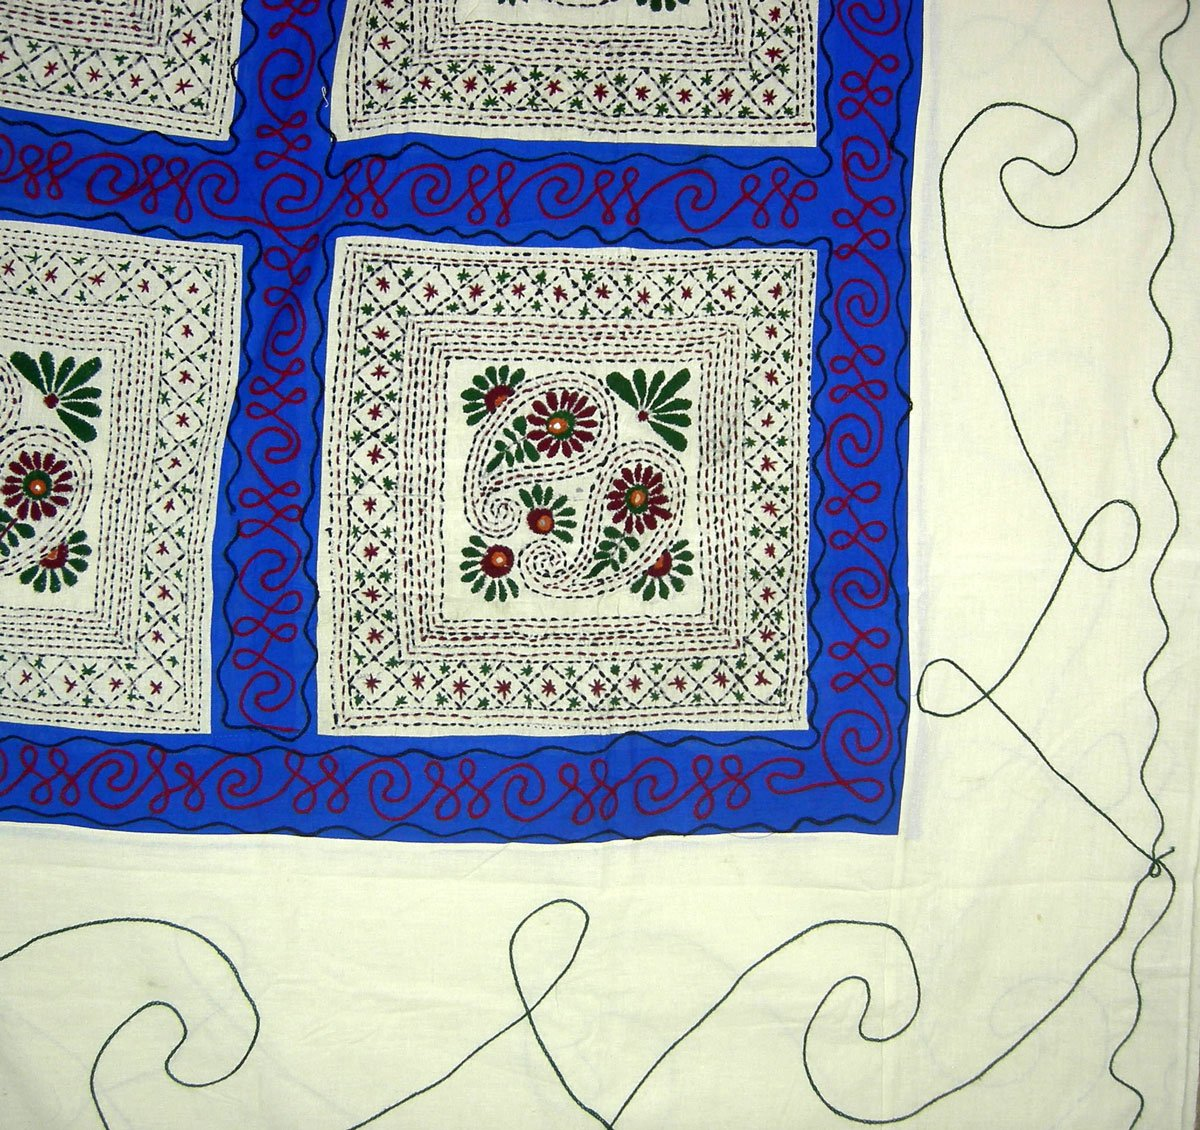 Handcrafted Decor Indian Queen Embroidered Cotton Bed Cover Ethnic Bedroom Decor 84 x 92 inches by ClothesCraft (Image #2)